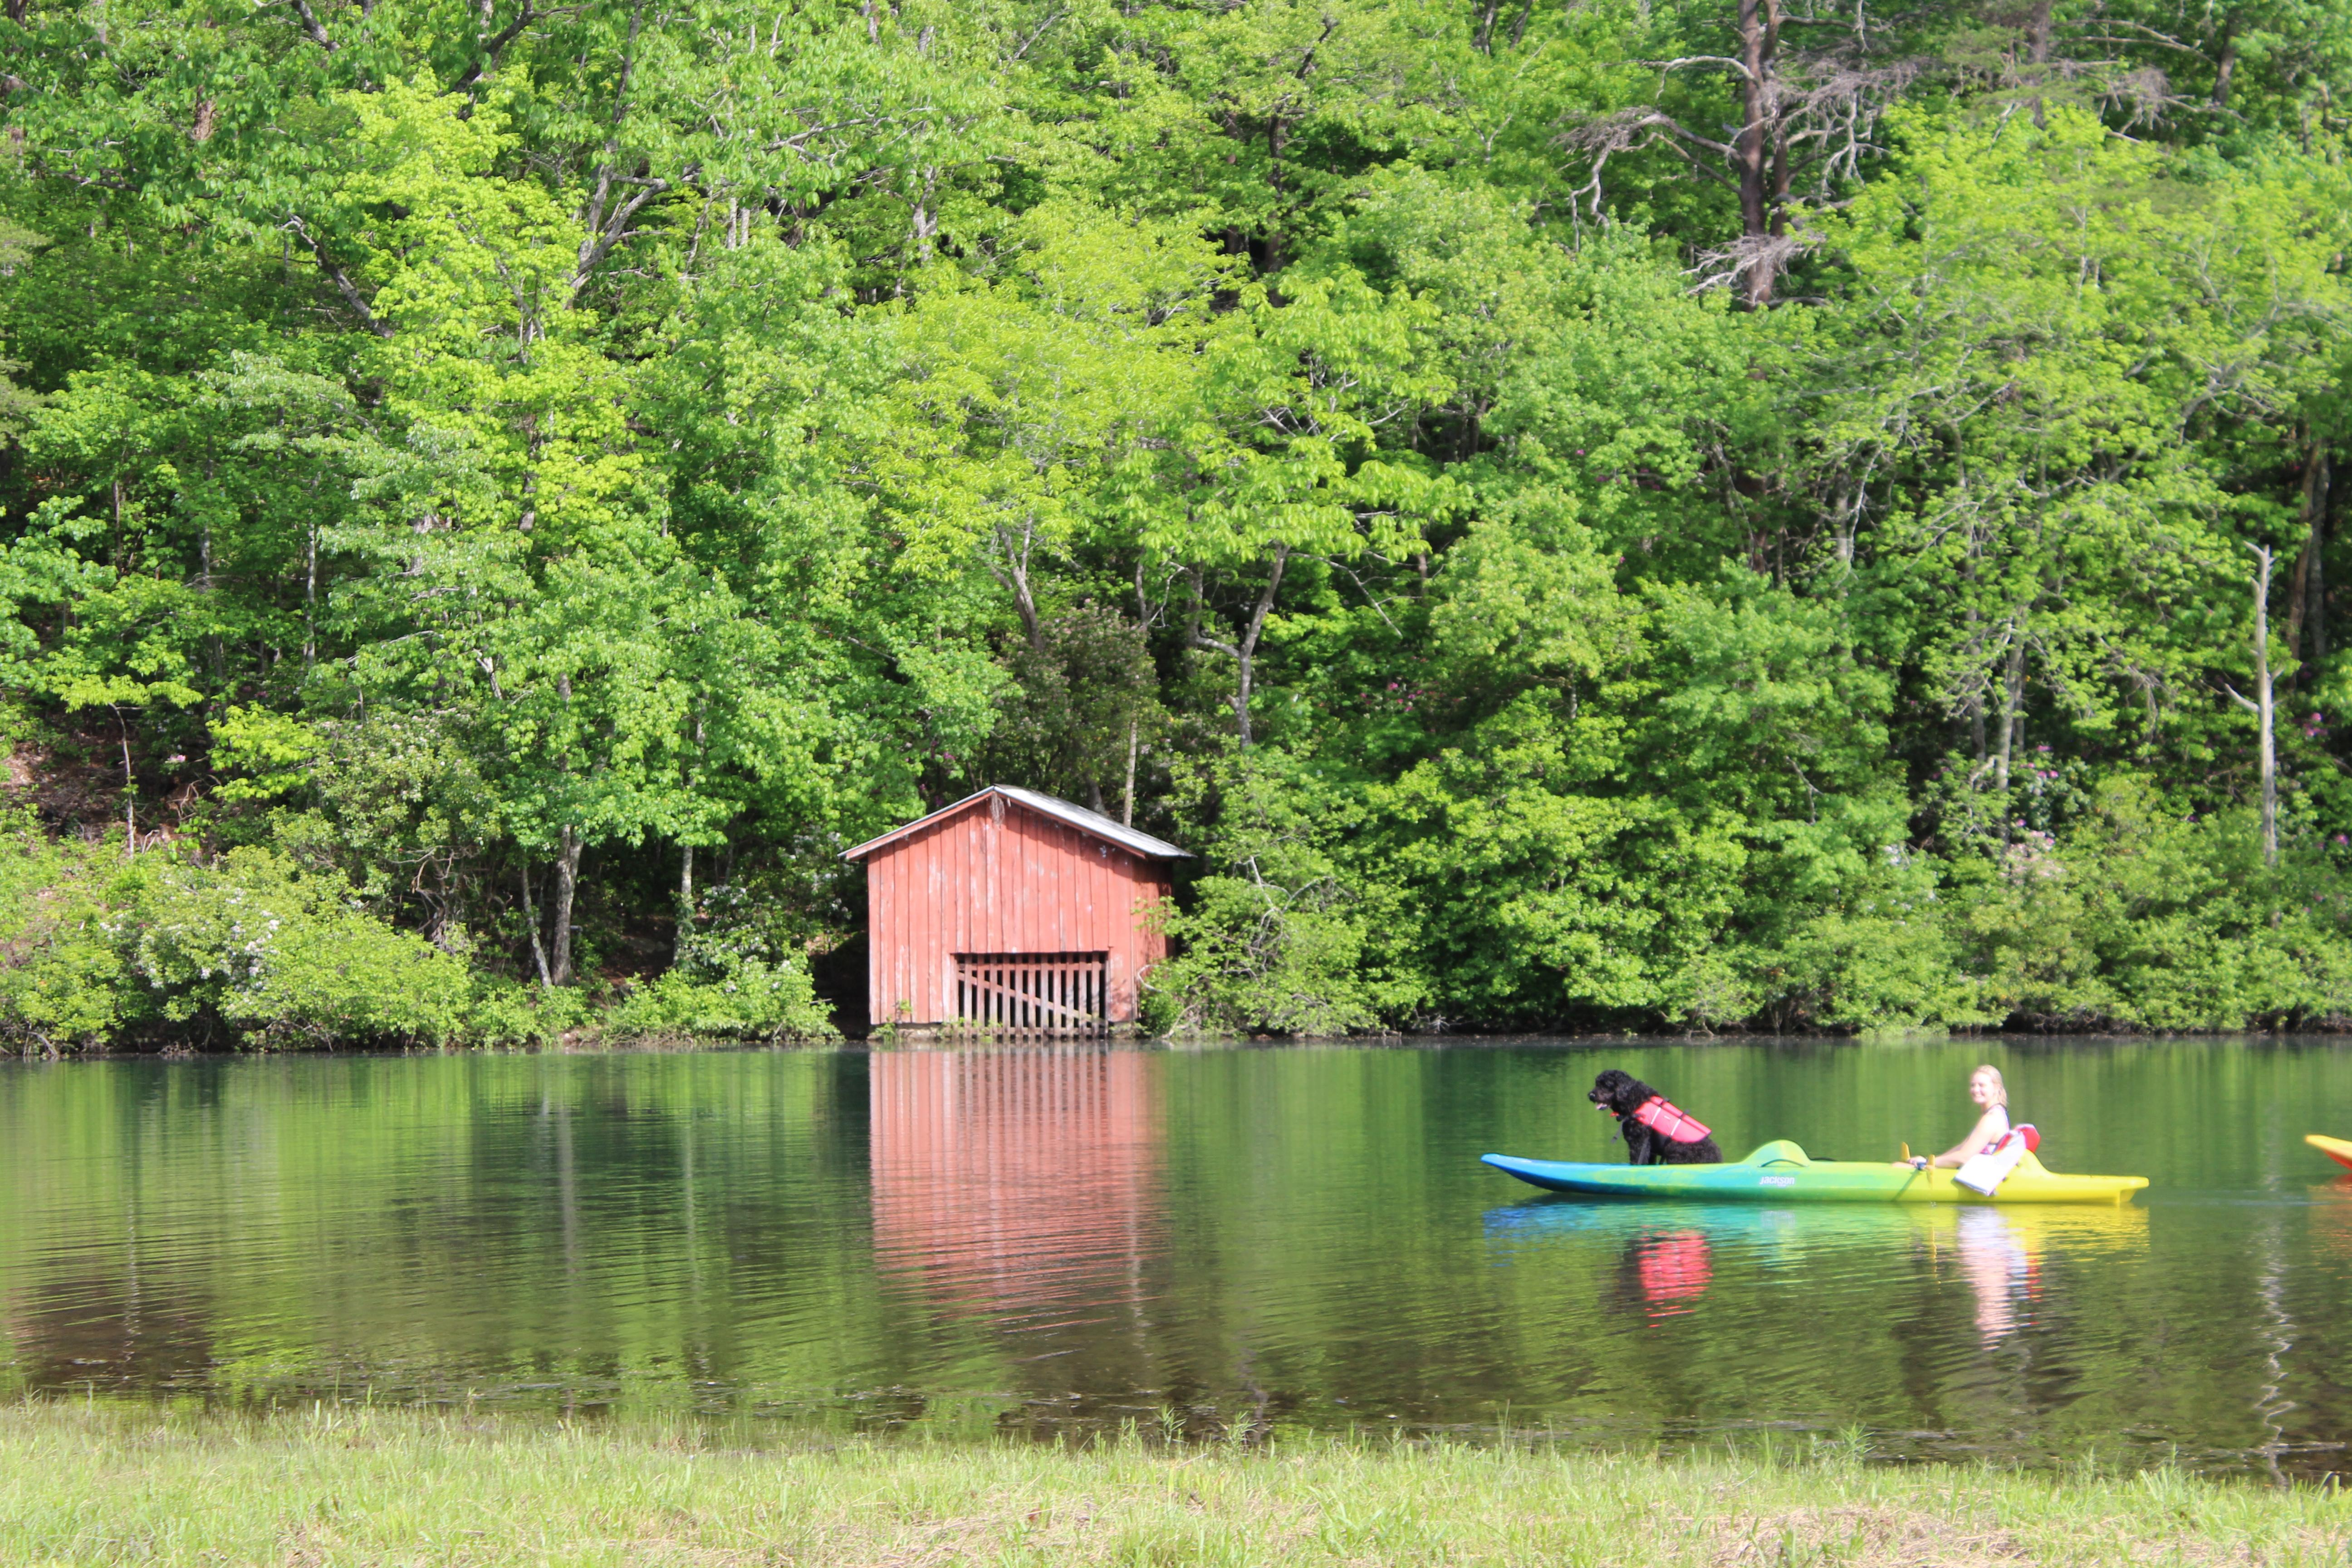 Kayak Little River Red Boat house and Dog